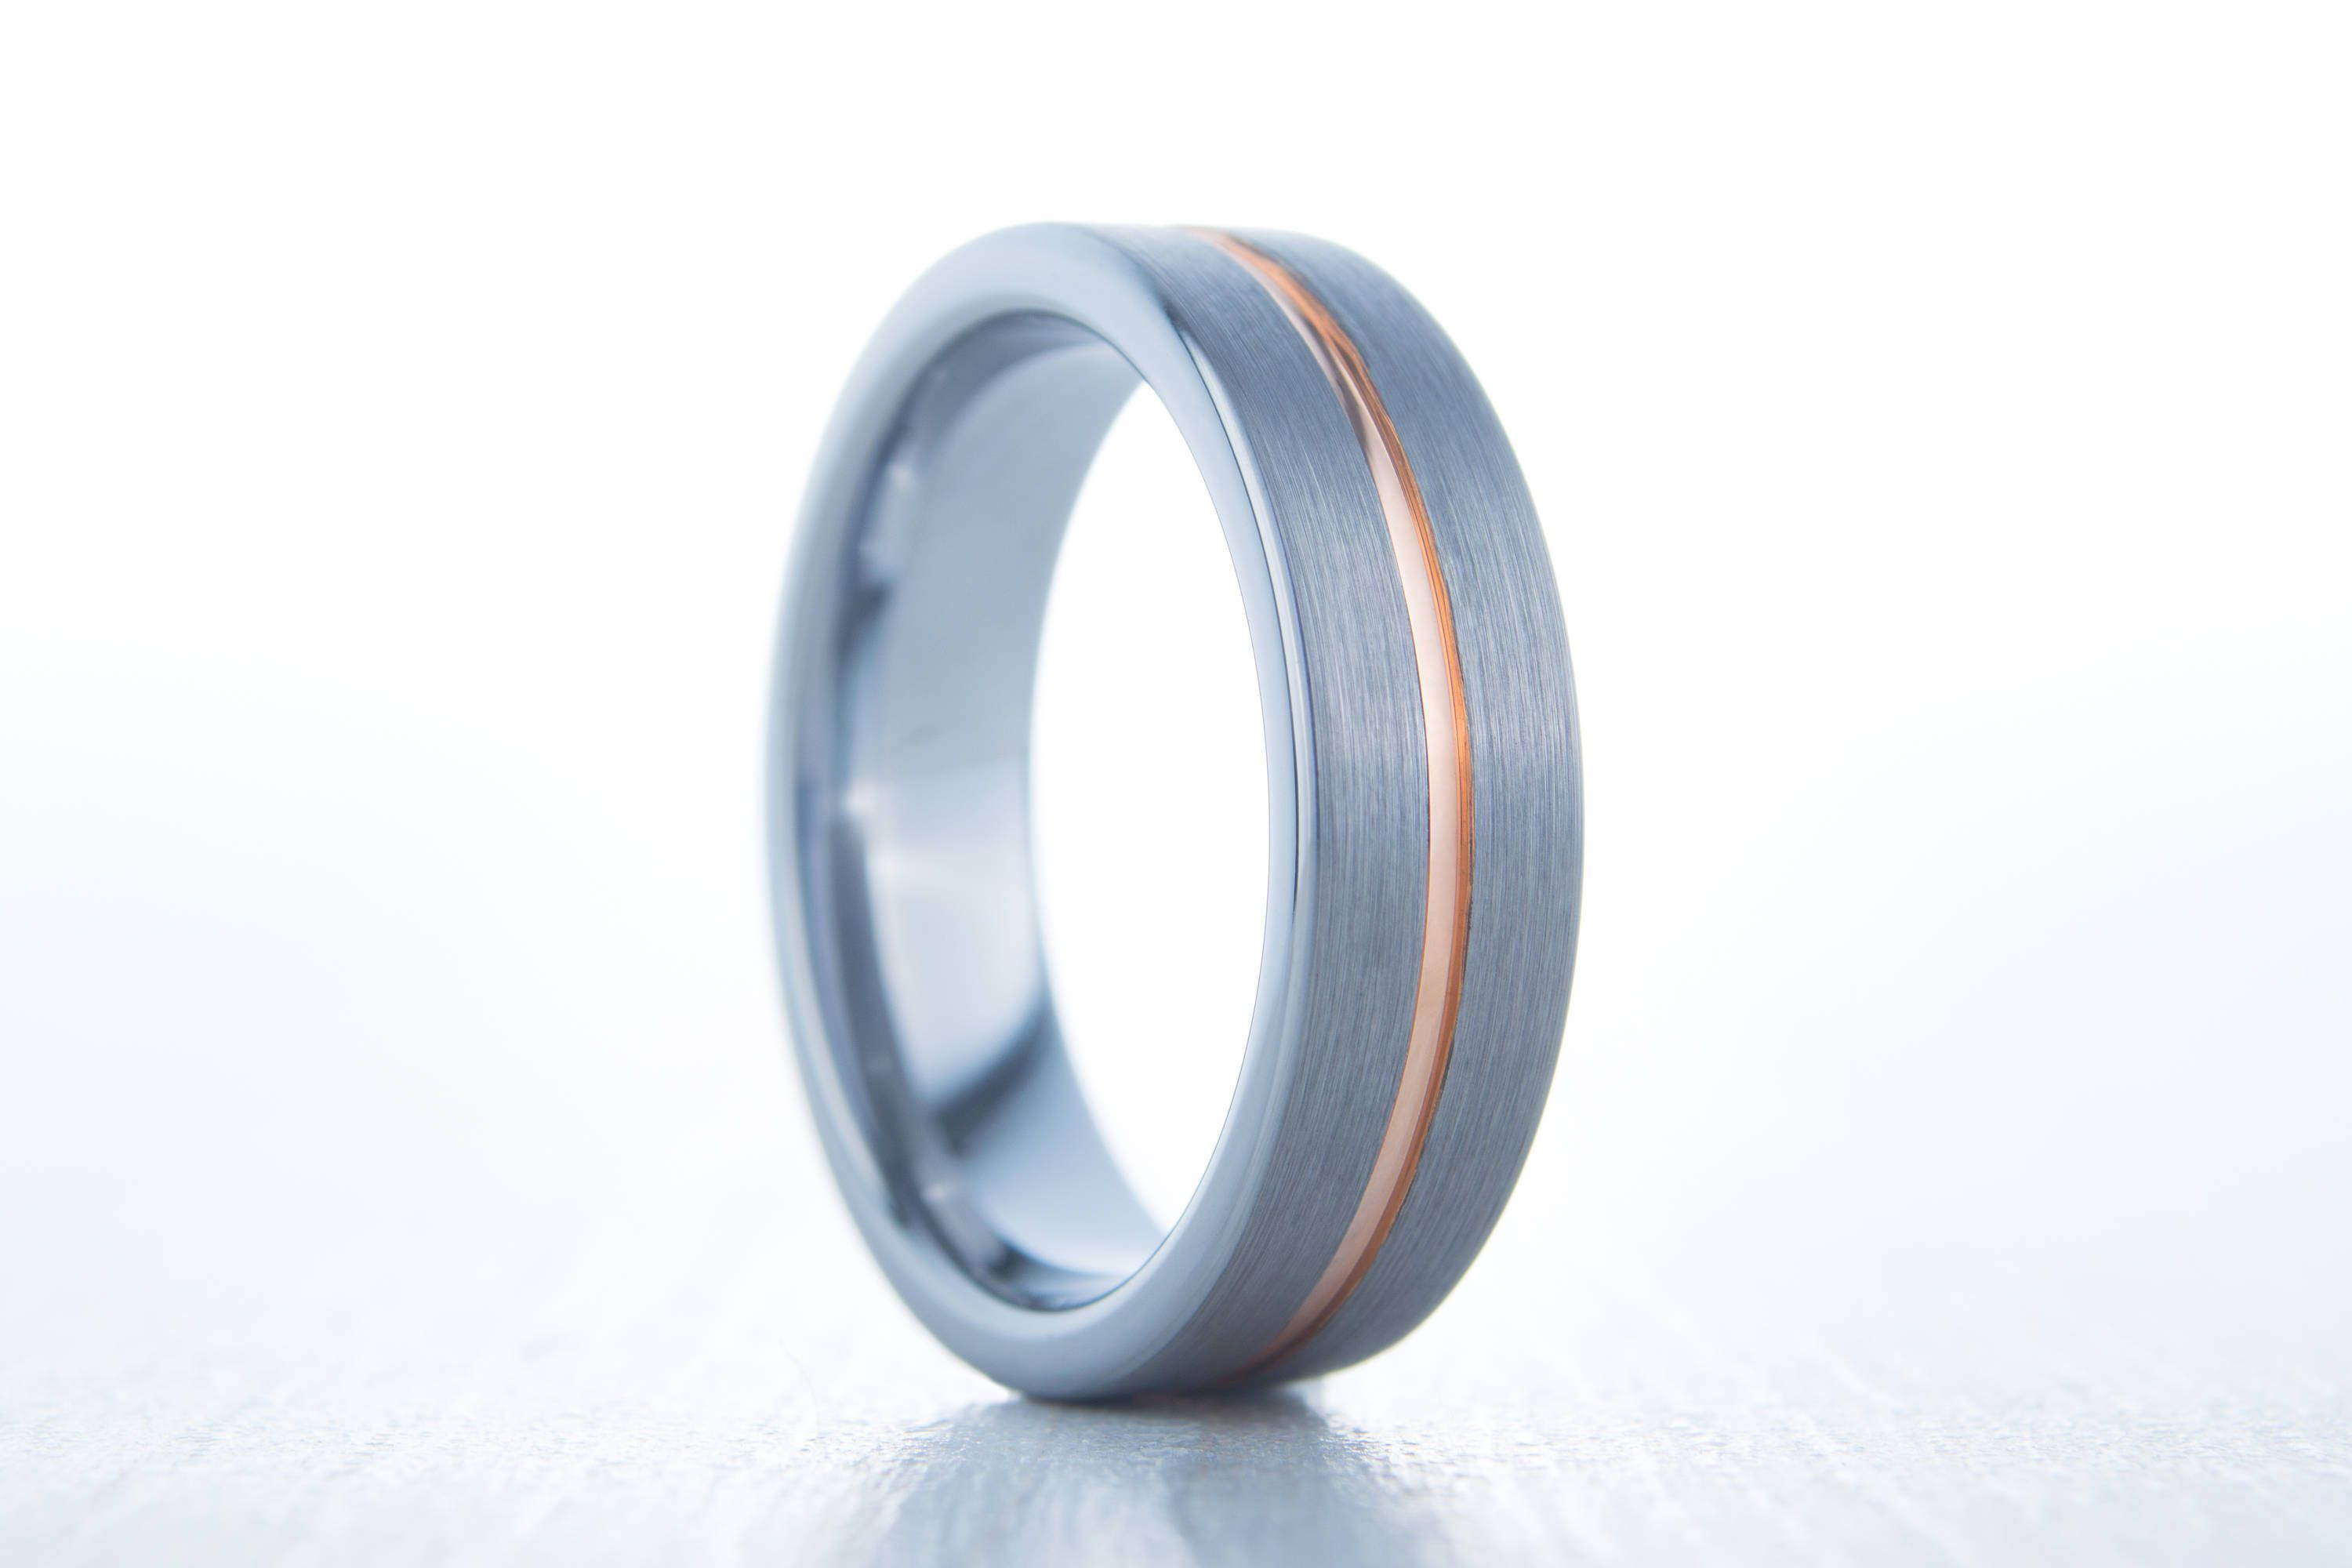 6mm wide 14K Rose Gold and Brushed Titanium Couples